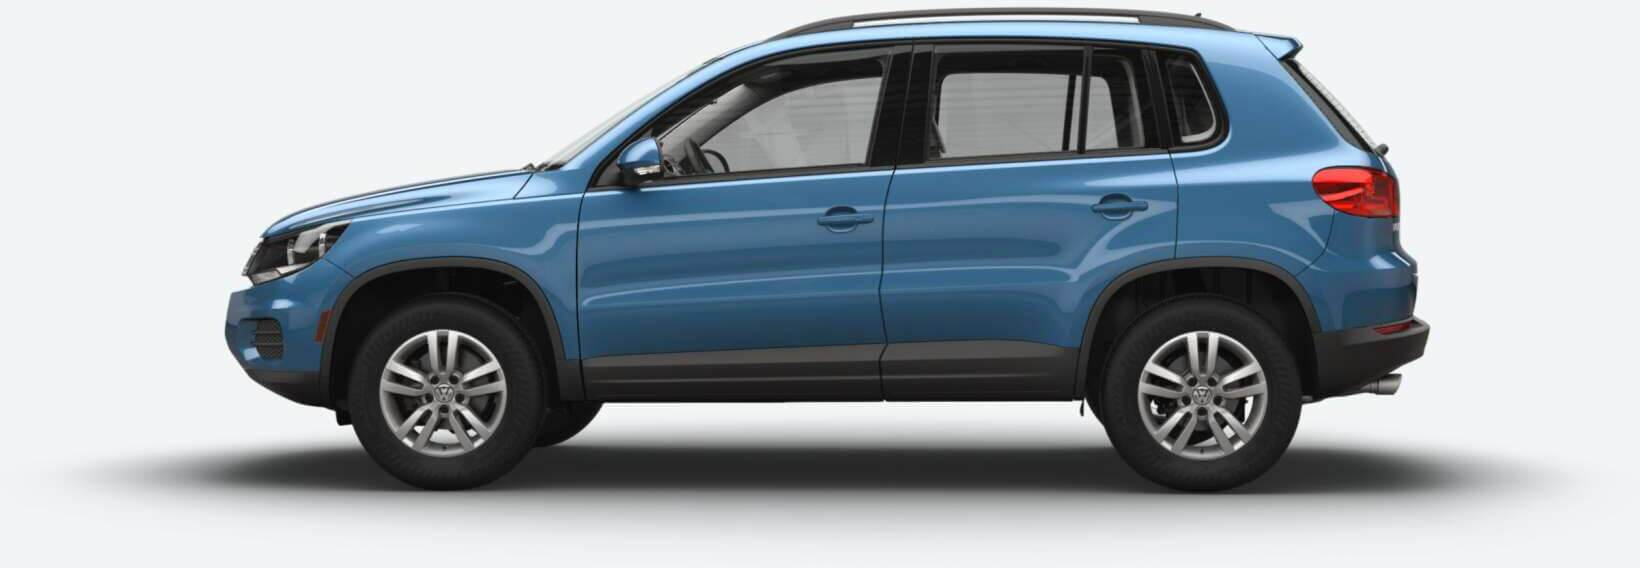 2017 Volkswagen Tiguan S Base Model